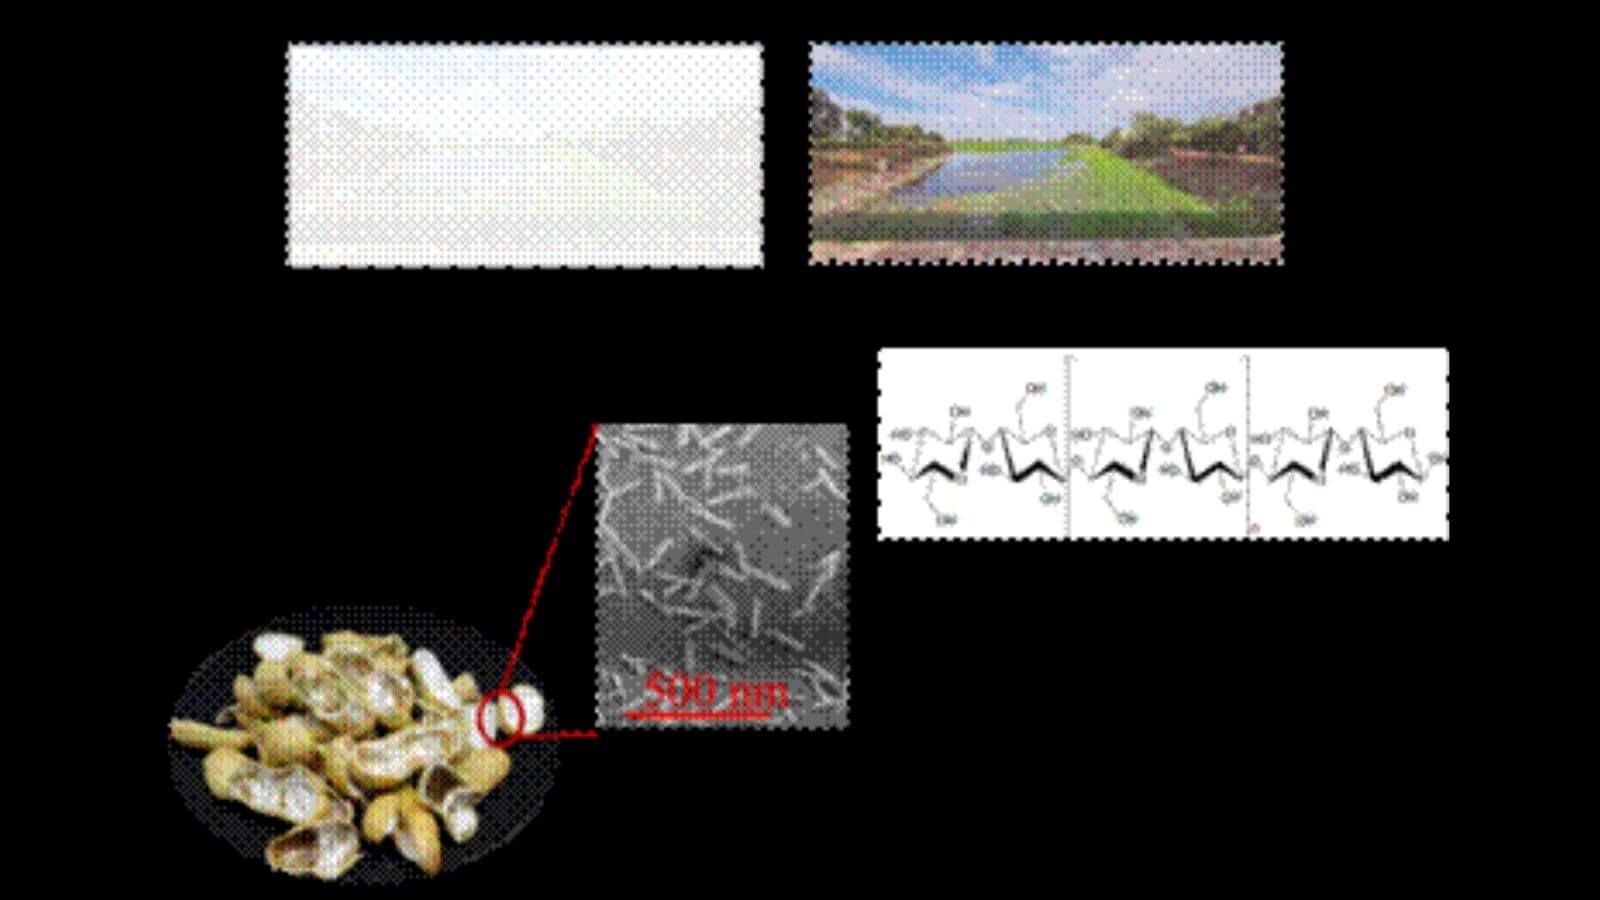 Indian scientists develop energy efficient smart screens from groundnut shells